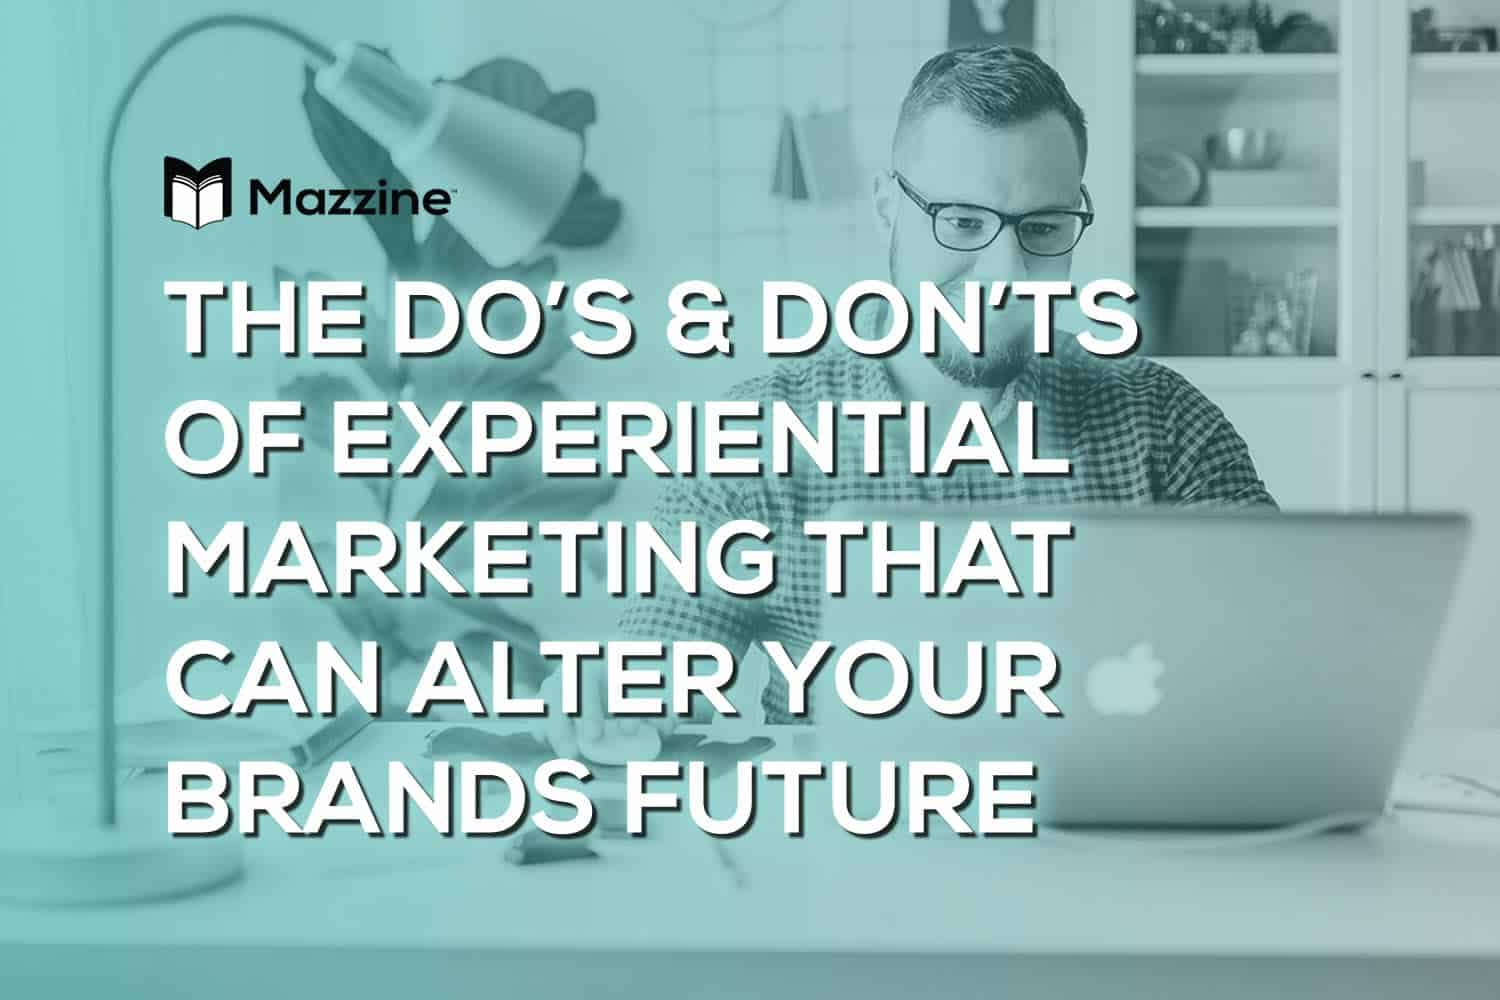 The Do's and Don'ts of Experiential Marketing That Can Alter Your Brand's Future